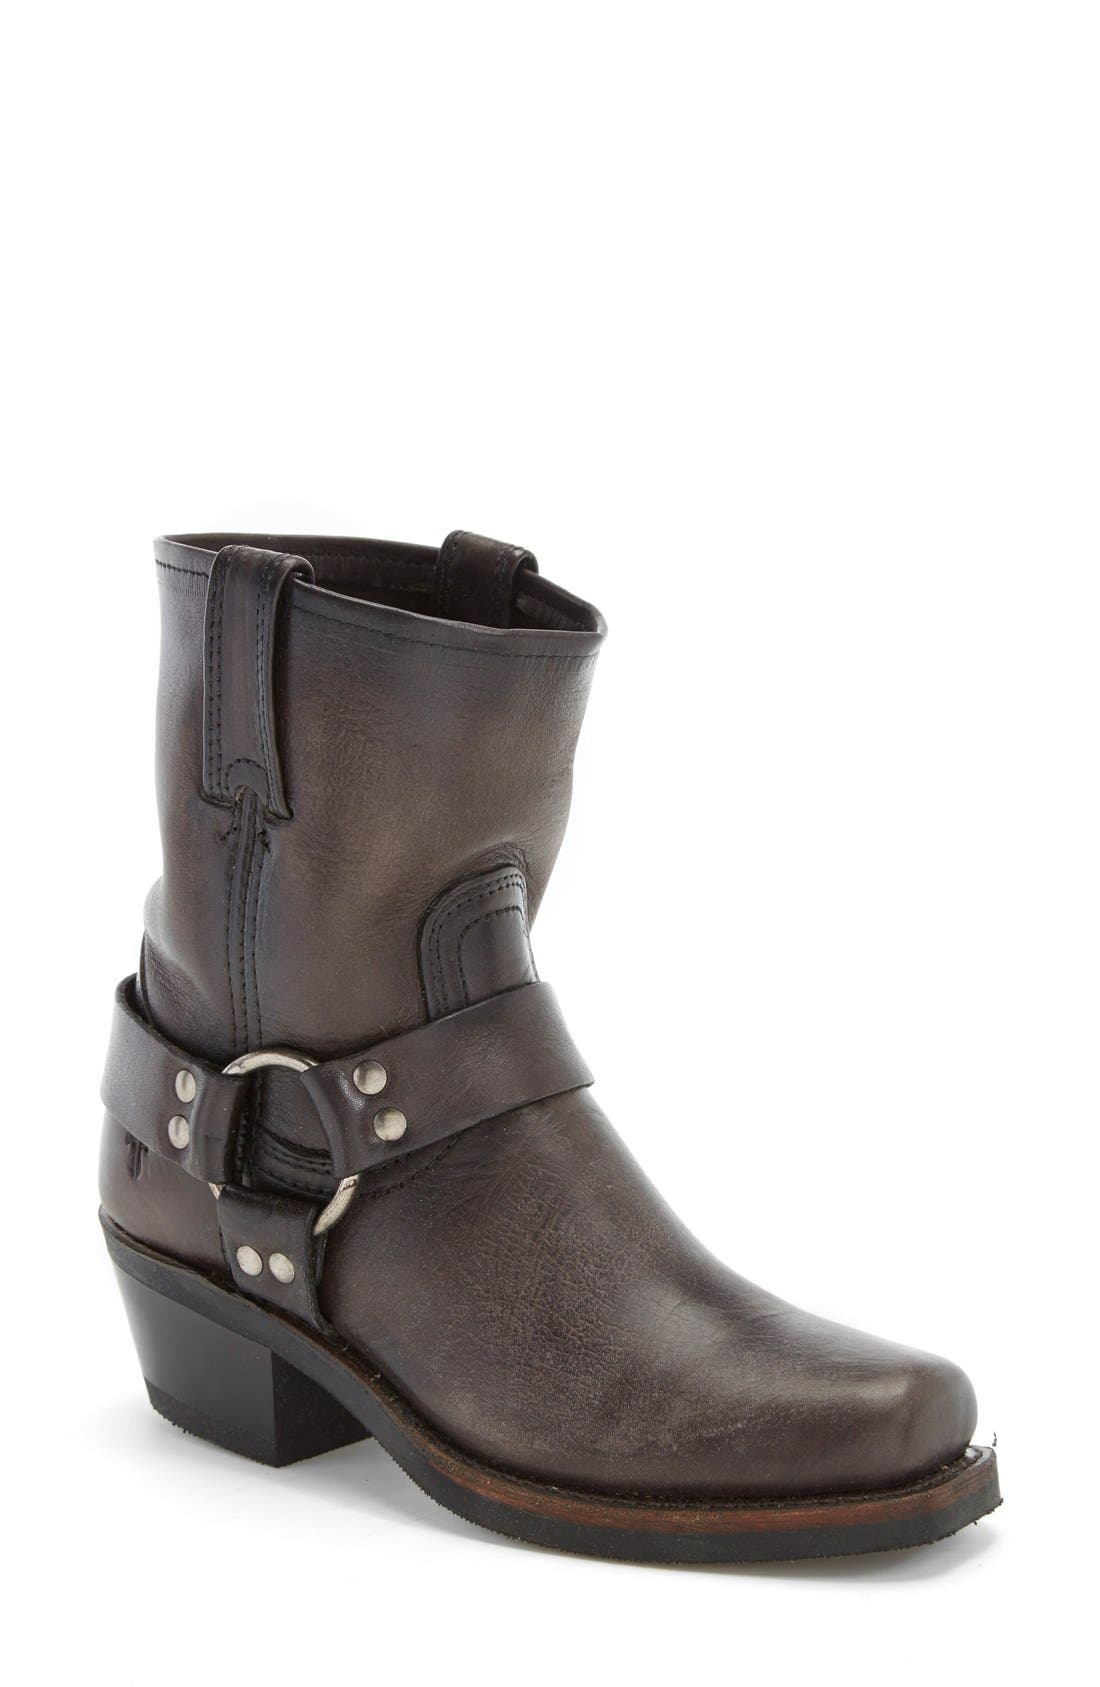 Main Image - Frye 'Harness 8R' Boot (Women)